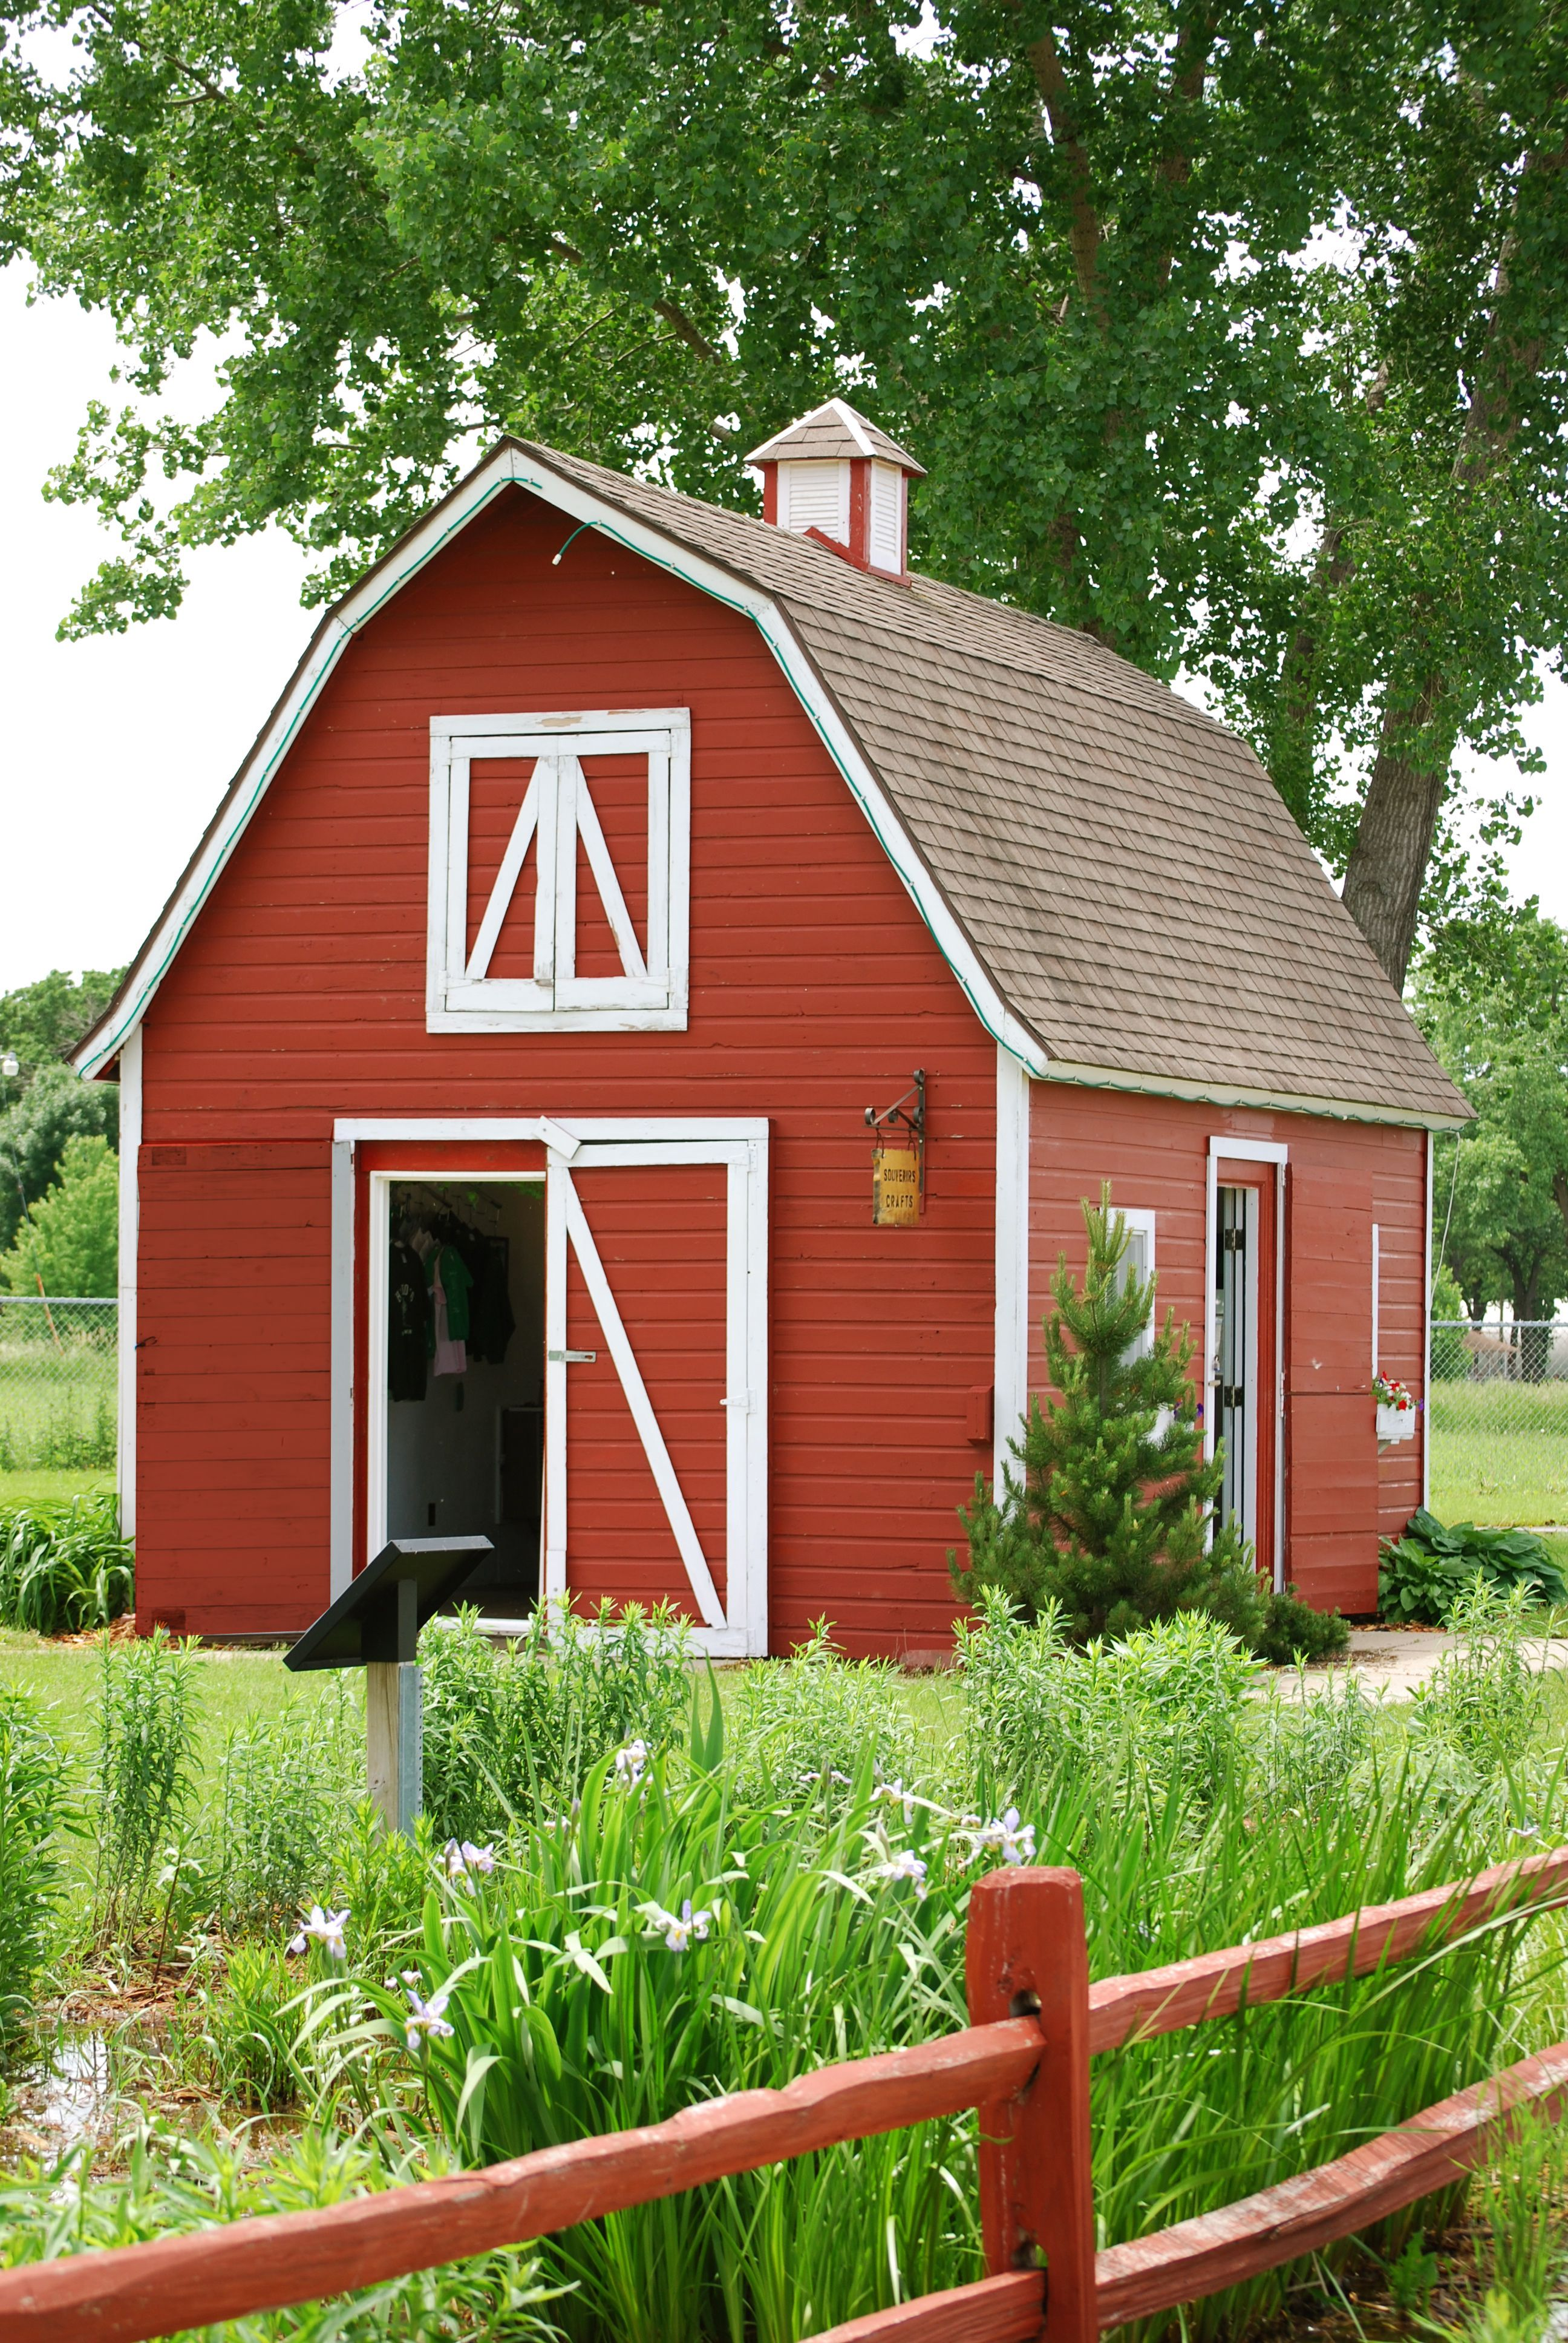 Barns: Giant Attractions In Blue Earth, MN